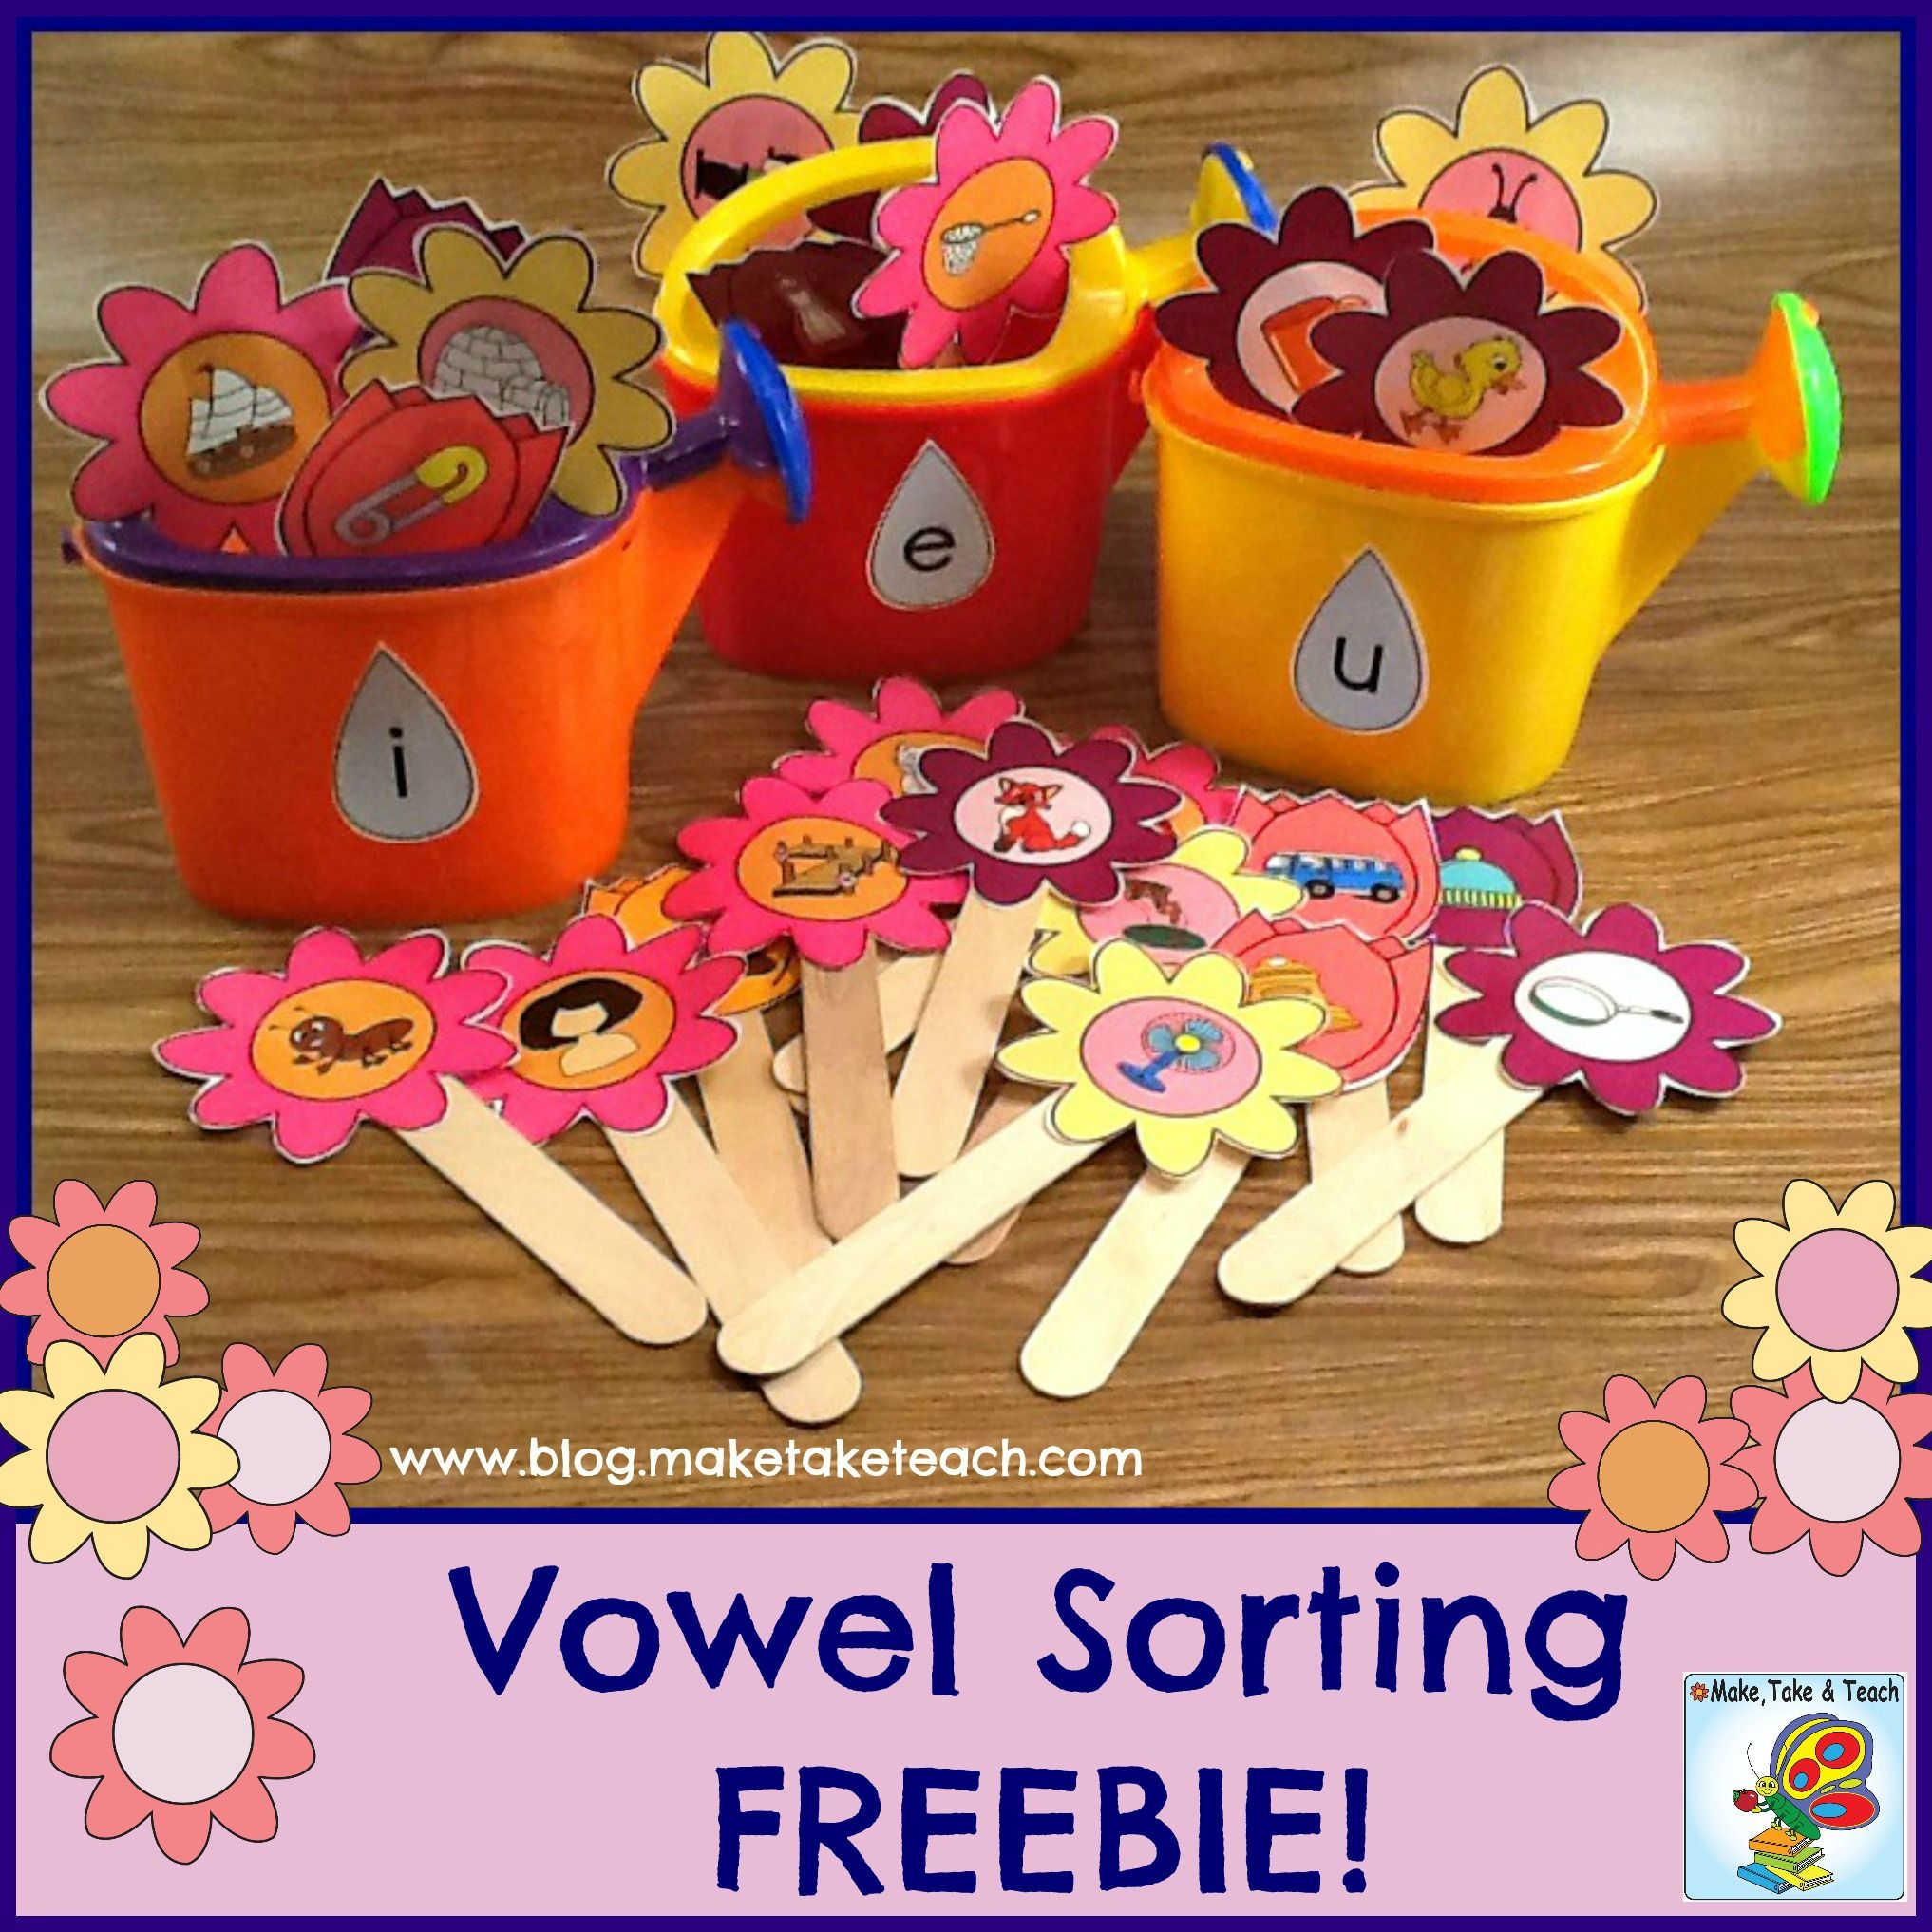 Free Short Vowel Pics Printed On Flowers Use For Sorting Activities During Your Small Group